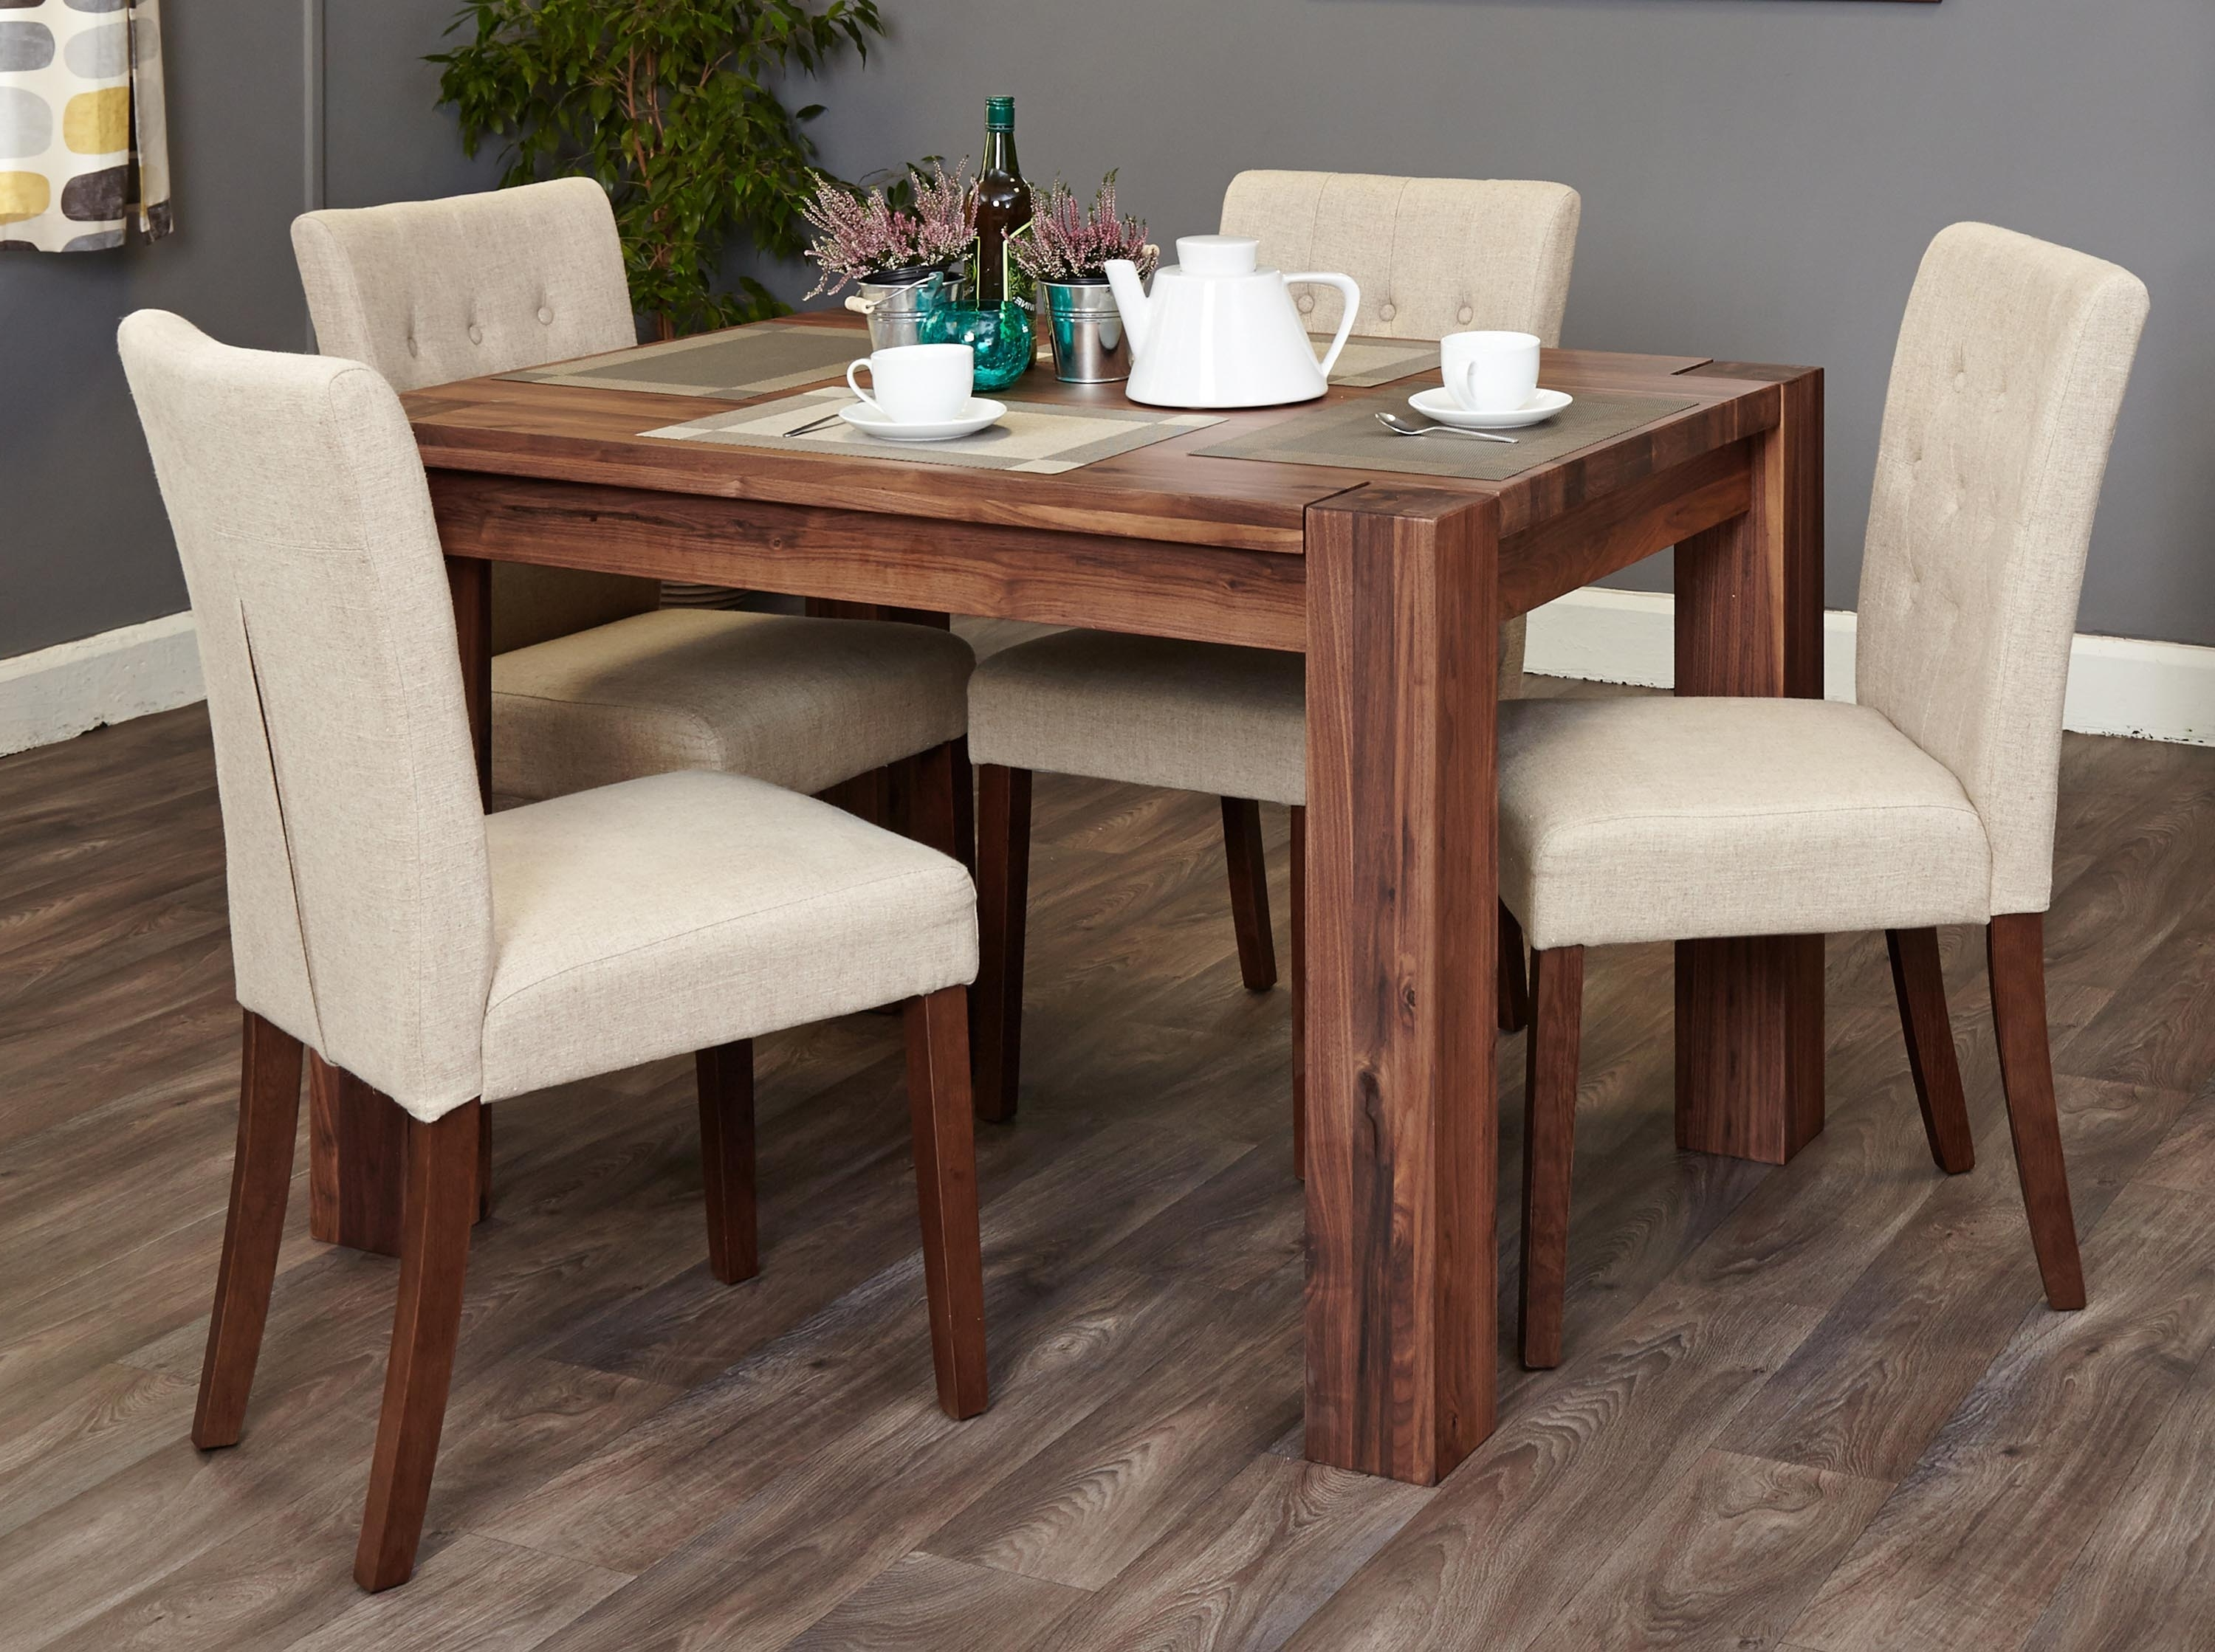 Shiro Walnut 4 Seater Dining Table Set (Biscuit Flare Back Regarding Most Recent Walnut Dining Table Sets (View 11 of 25)